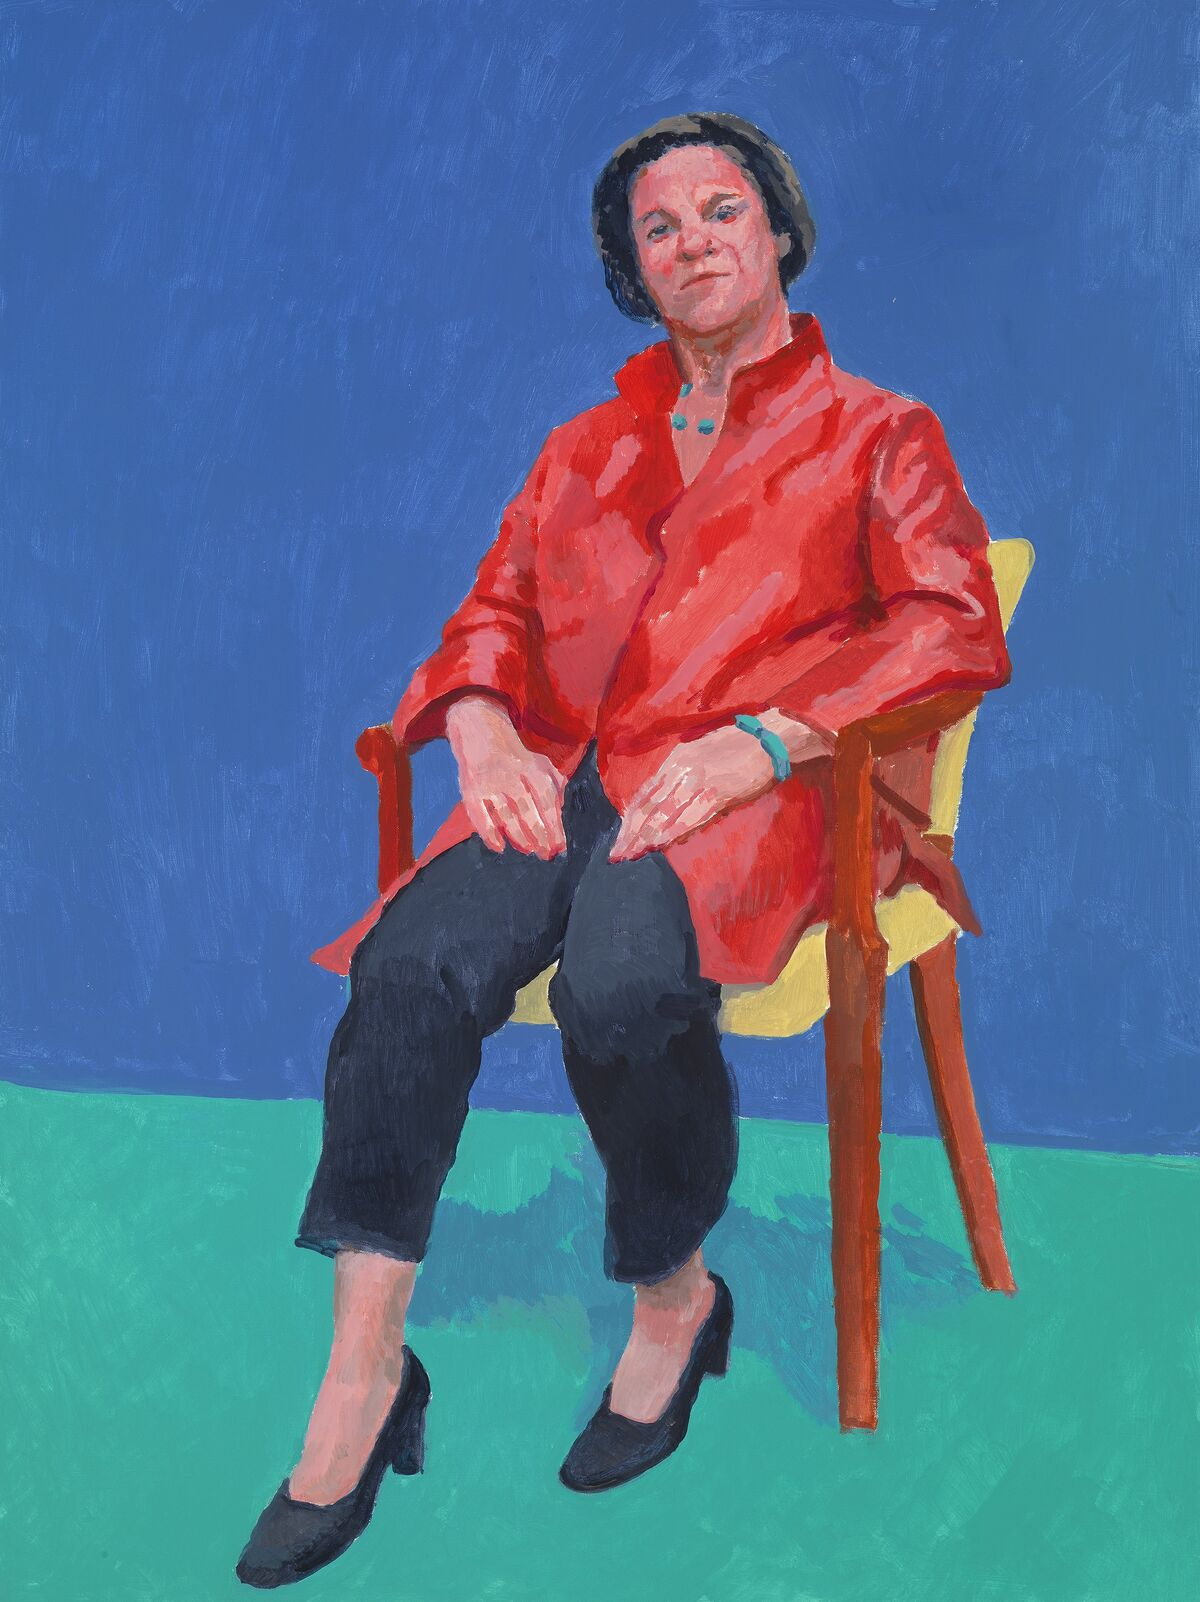 """David Hockney, Stephanie Barron, 7th, 8th, 9th January 2014, 2014, from """"82 Portraits and 1 Still-life."""" © David Hockney. Photo by Richard Schmidt. Courtesy of the Los Angeles Museum of Art."""